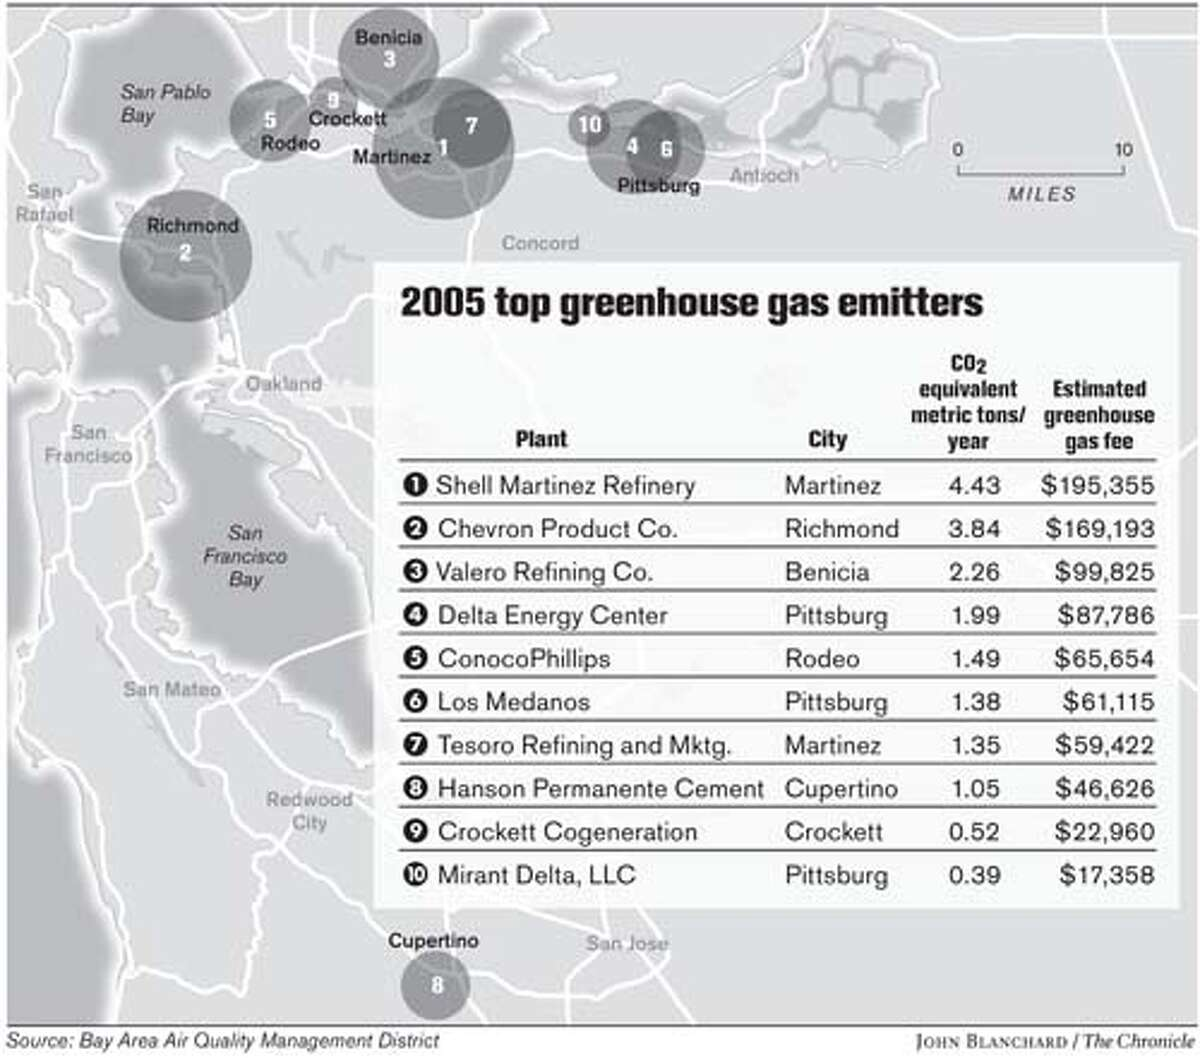 2005 top greenhouse gas emitters. Chronicle graphic by John Blanchard